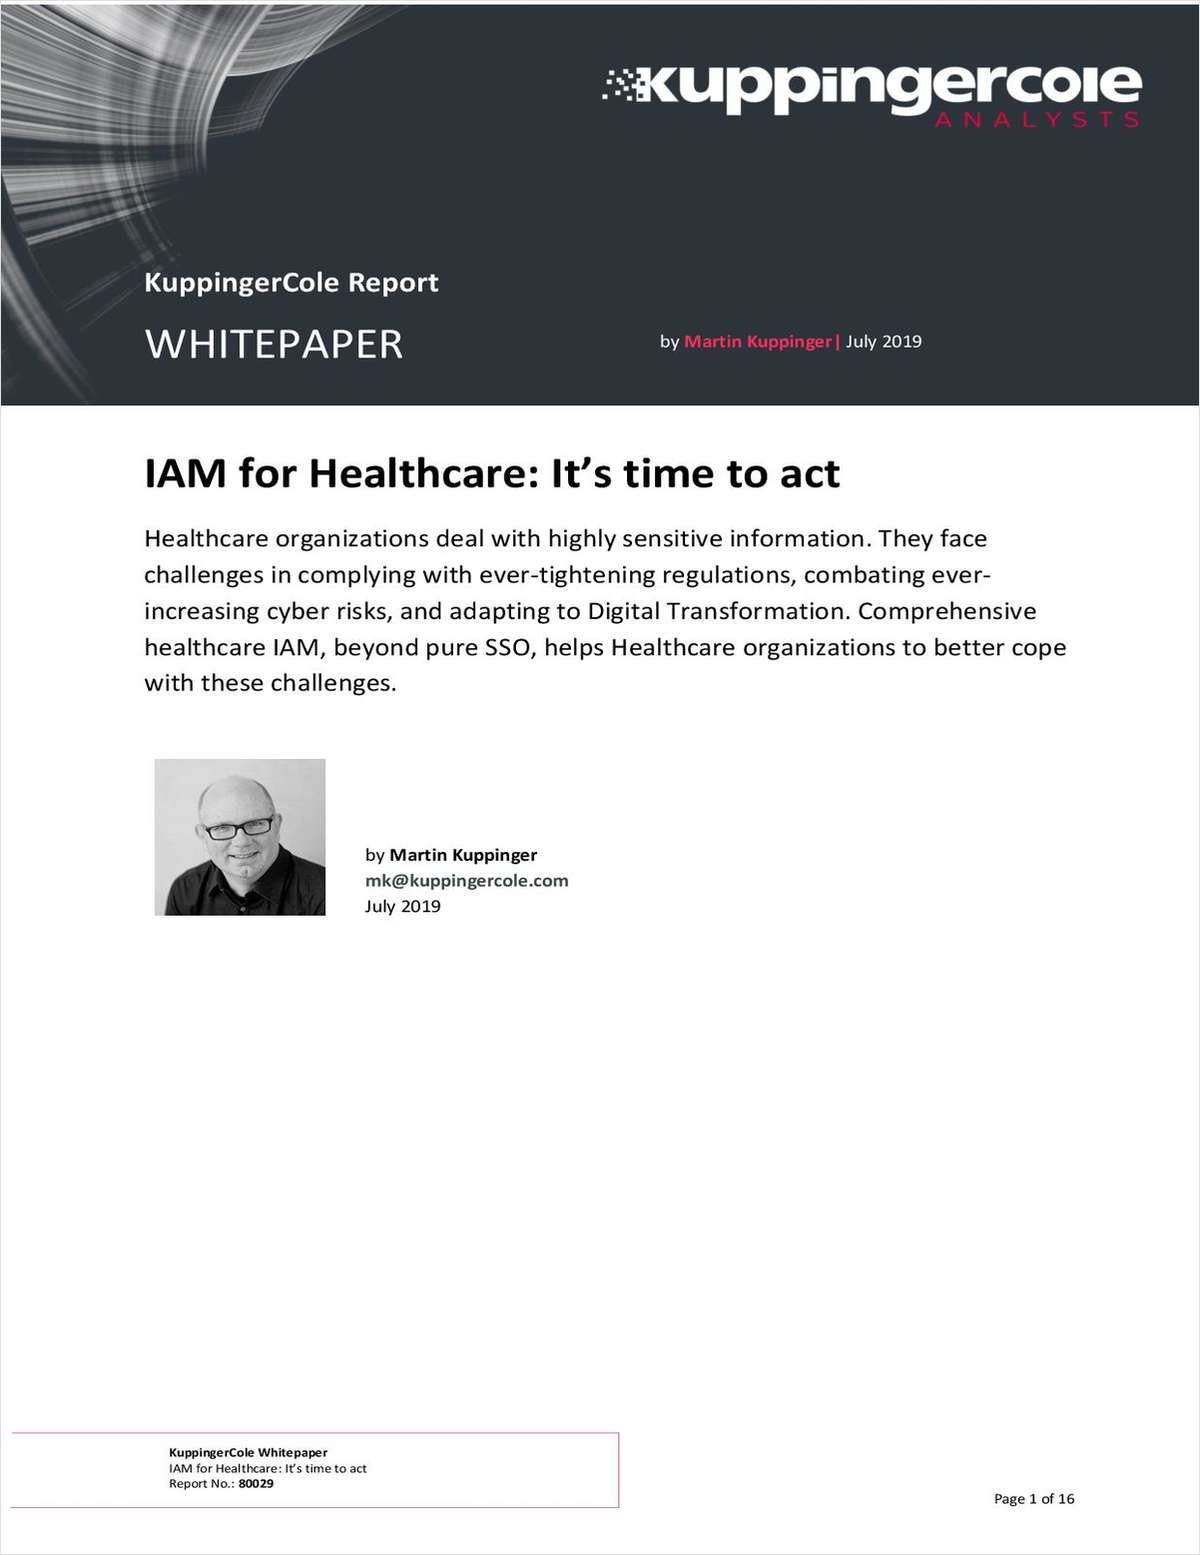 [KuppingerCole Report] IAM in Healthcare: It's time to act